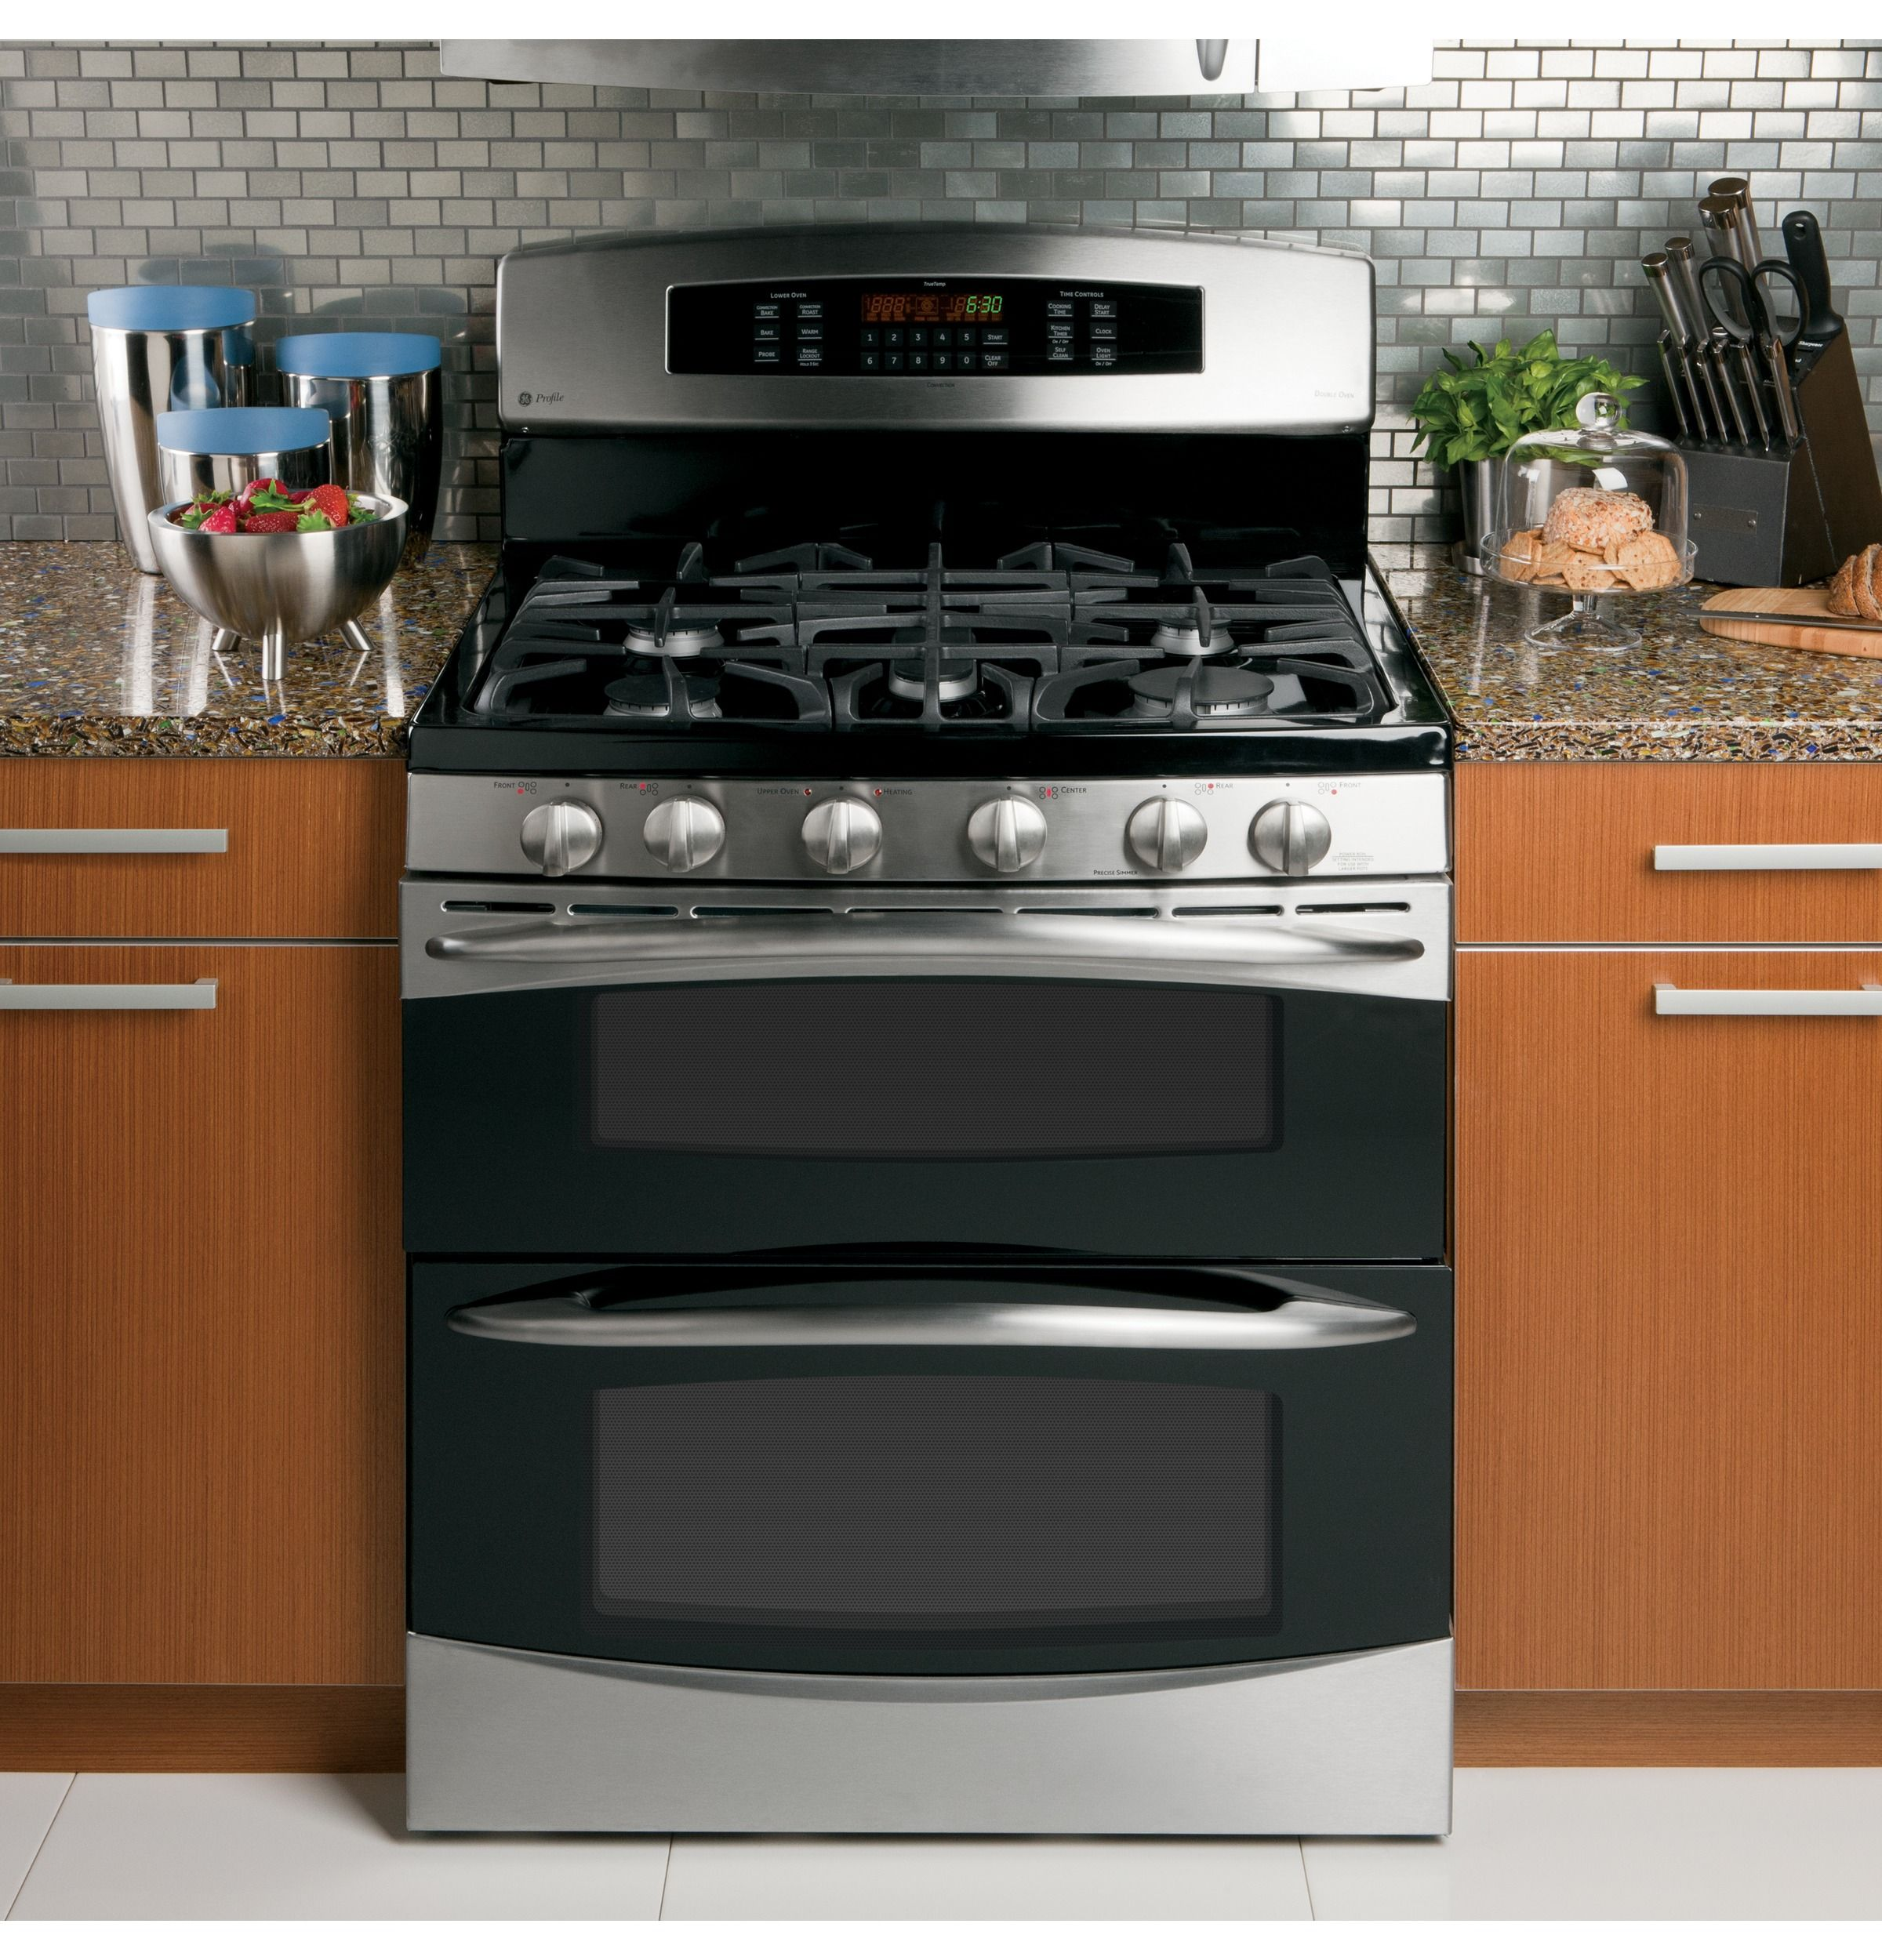 Pgb995setss Ge Profile 30 Free Standing Gas Double Oven With